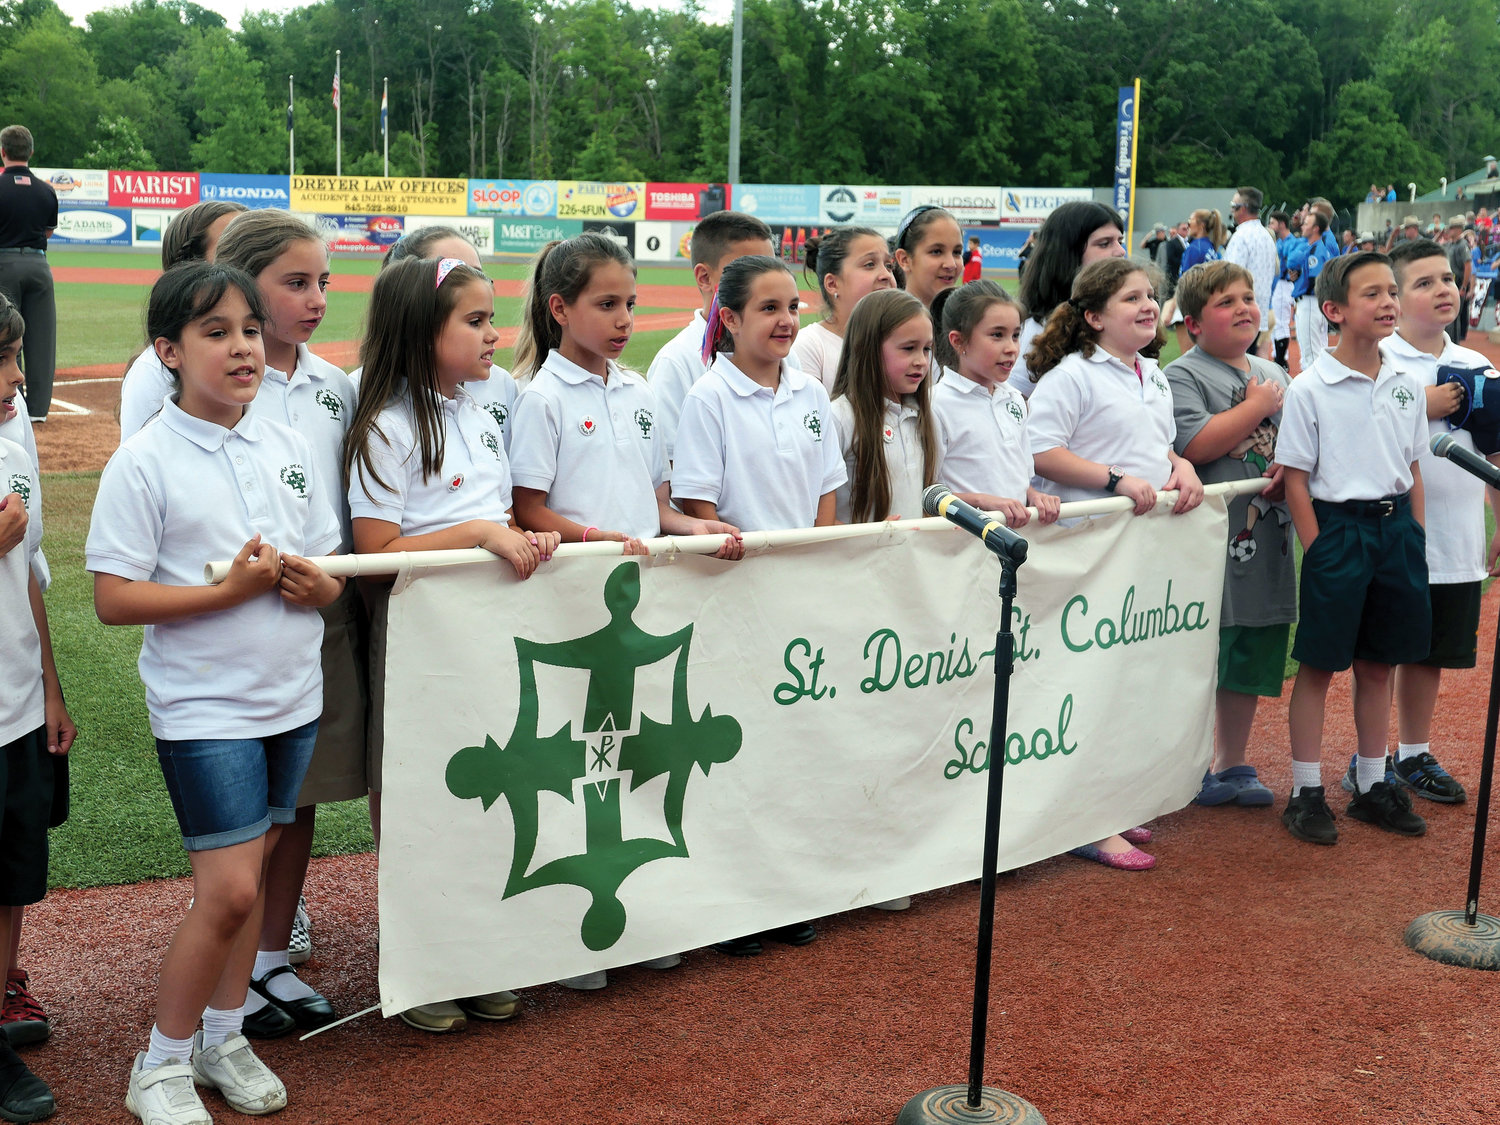 Students from St. Denis-St. Columba School in Hopewell Junction sing the National Anthem.